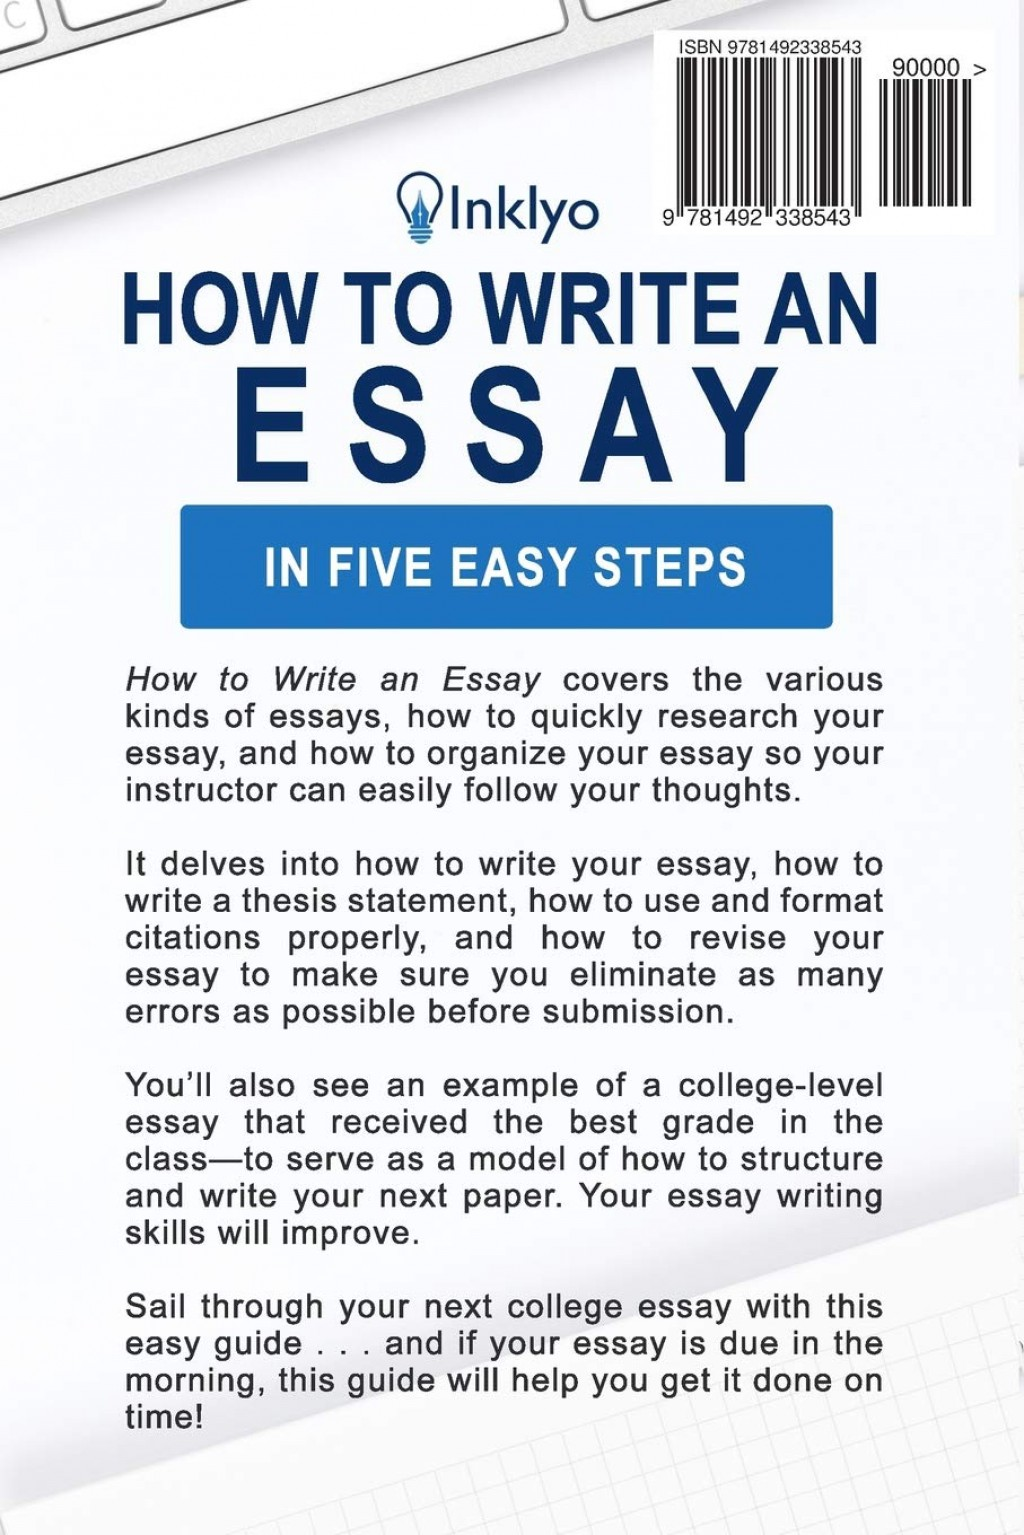 004 Essay Example How To Write And Unique An Outline 6th Grade Conclusion In Mla Format Large